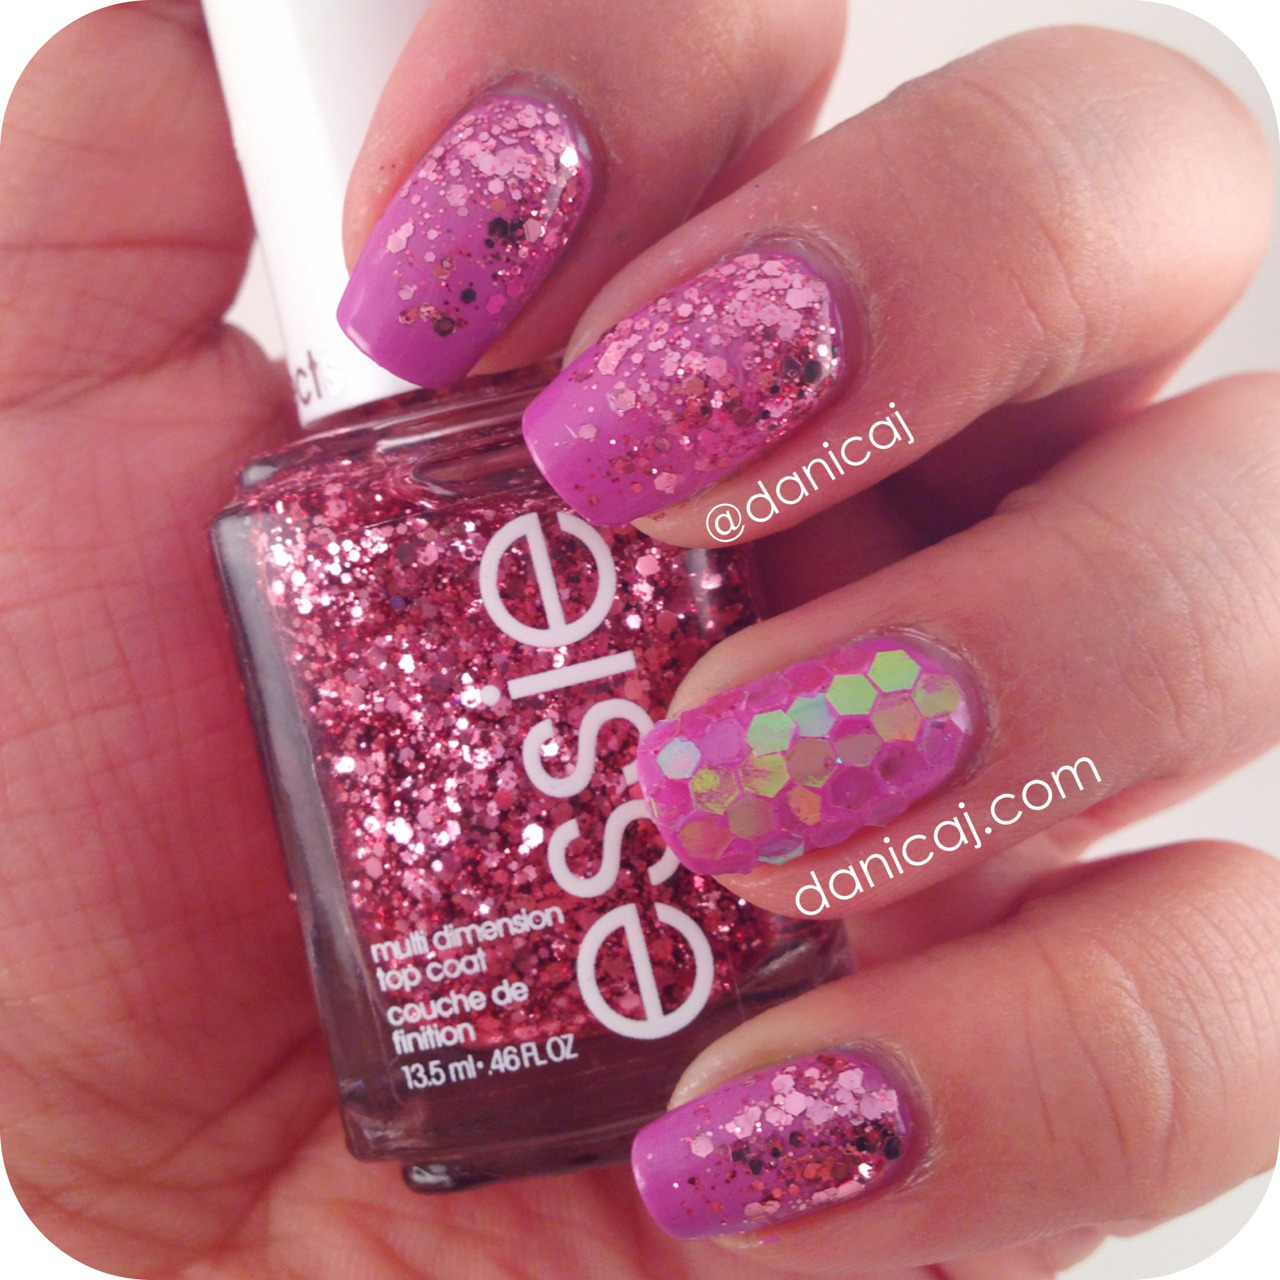 Glitter gradient and glitter placement!   Polishes Used: Sally Hansen - Lively Lilac Essie - A Cut Above